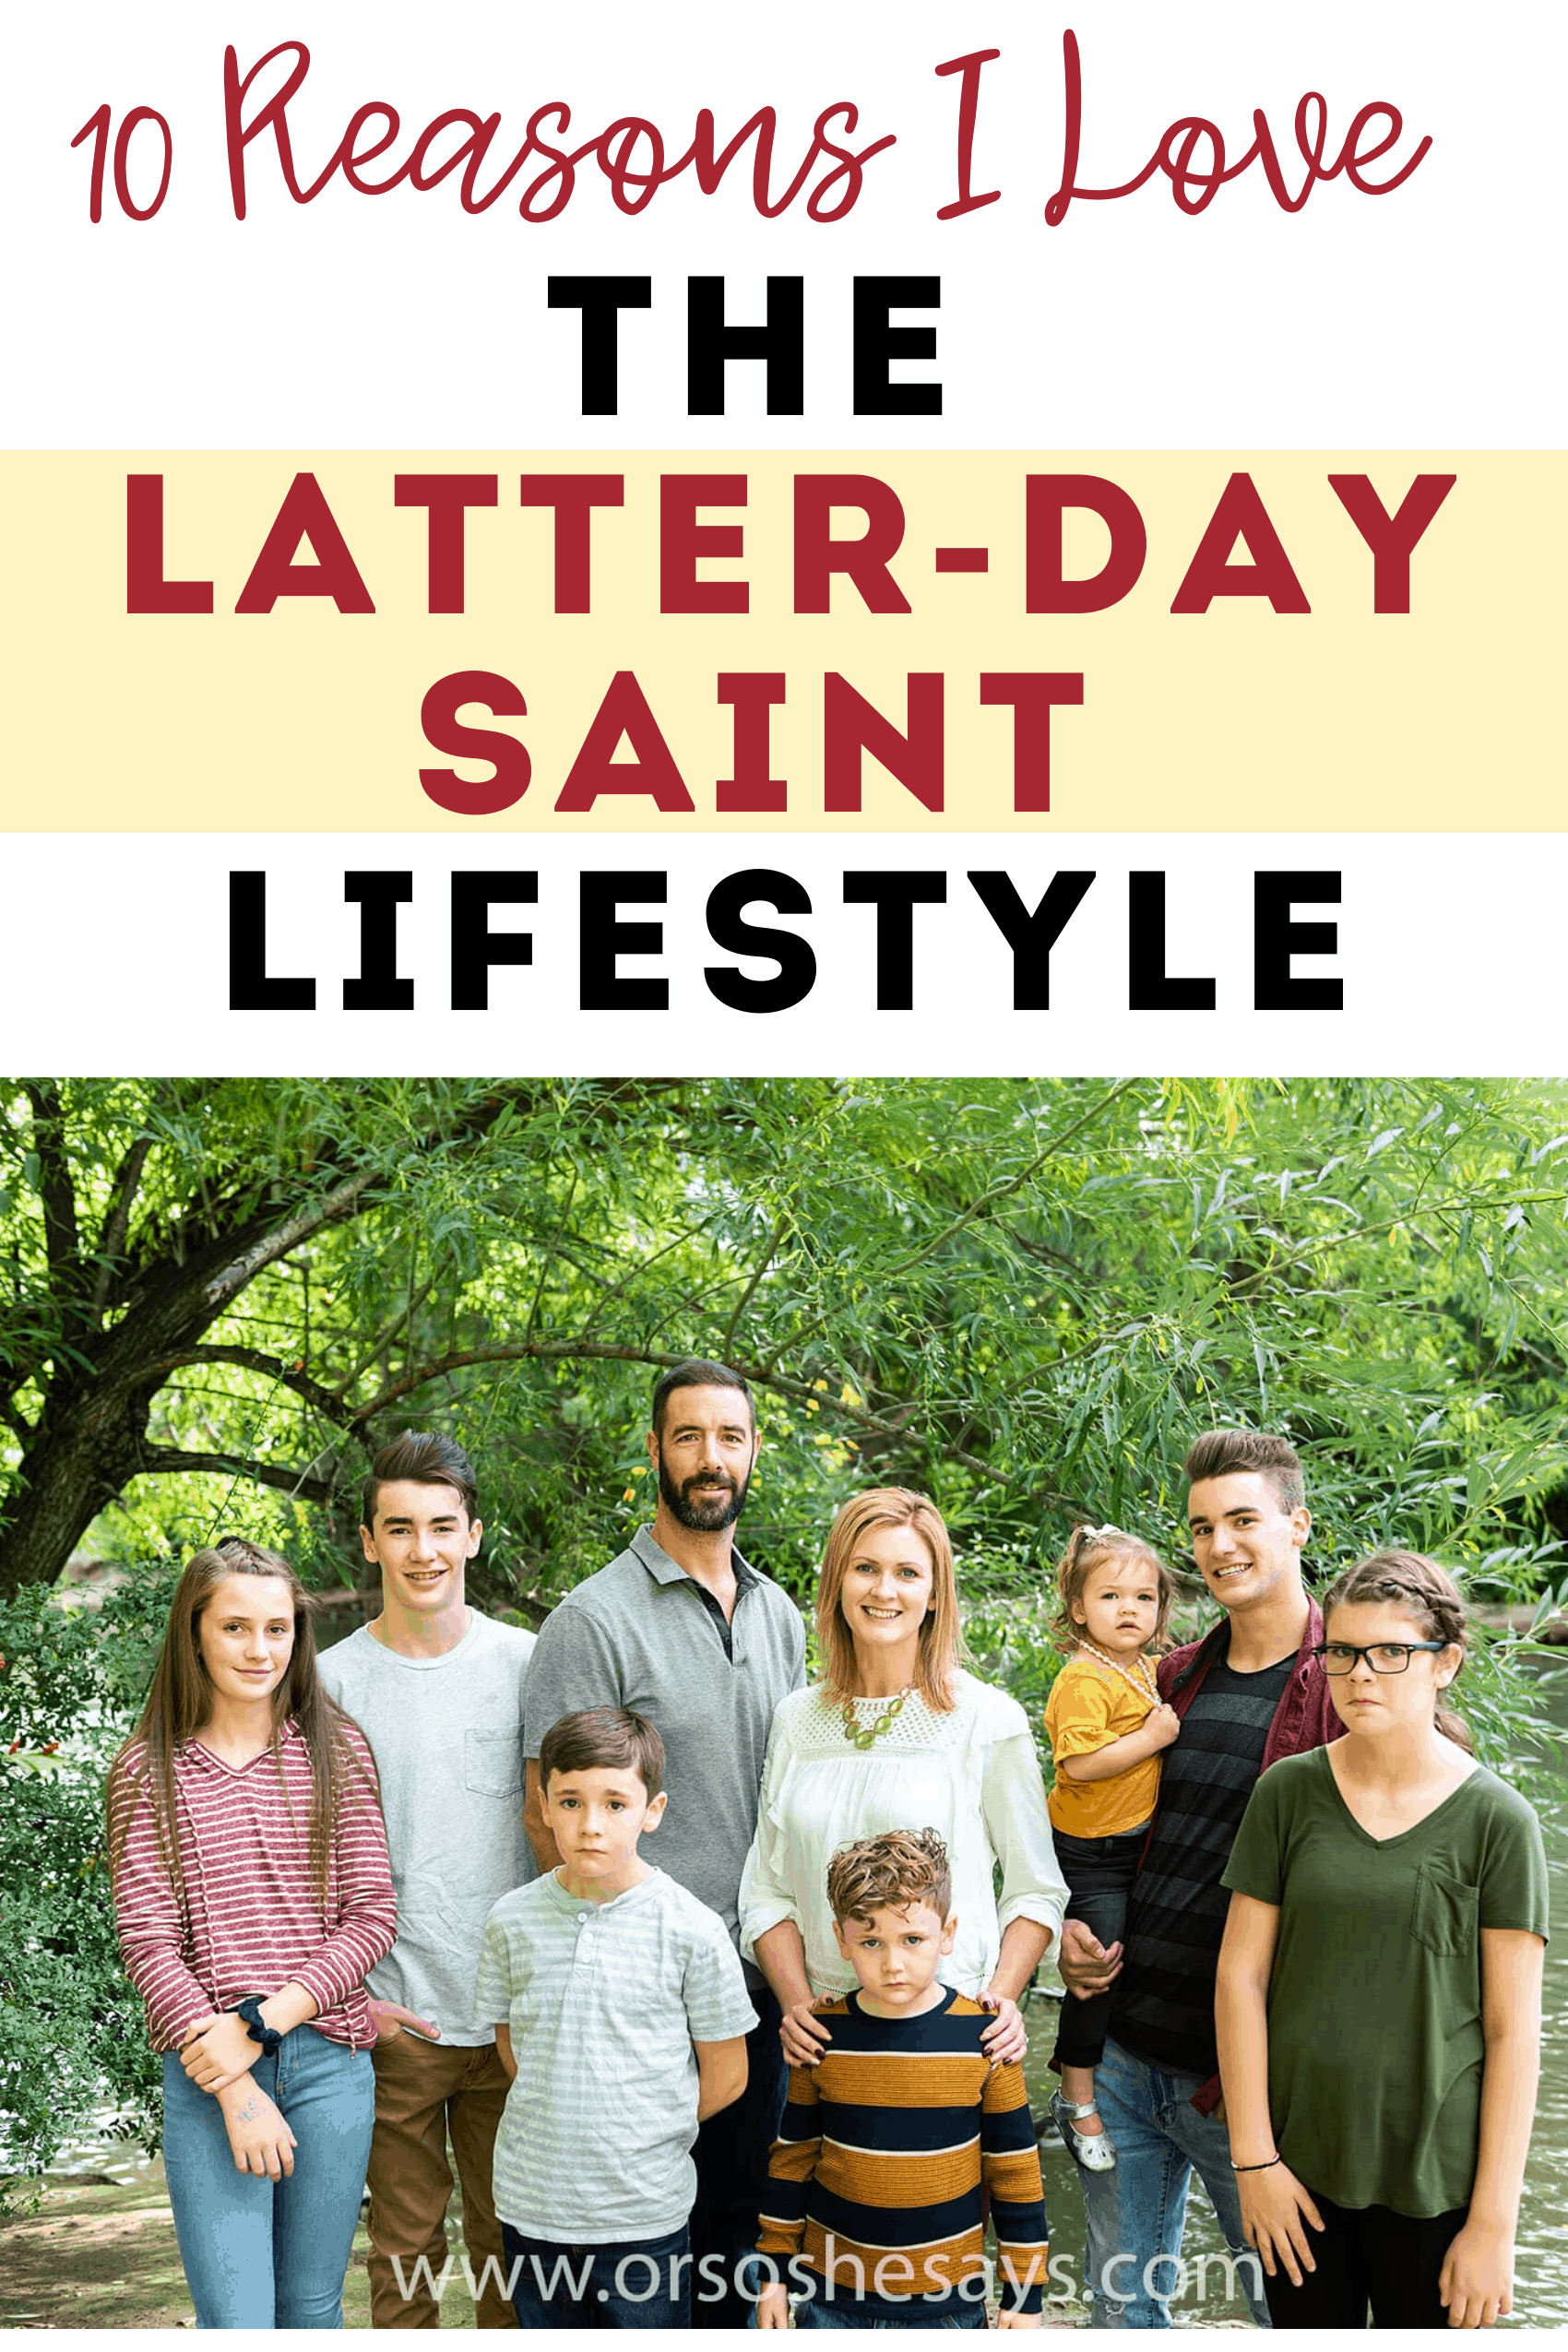 Latter-day Saint lifestyle